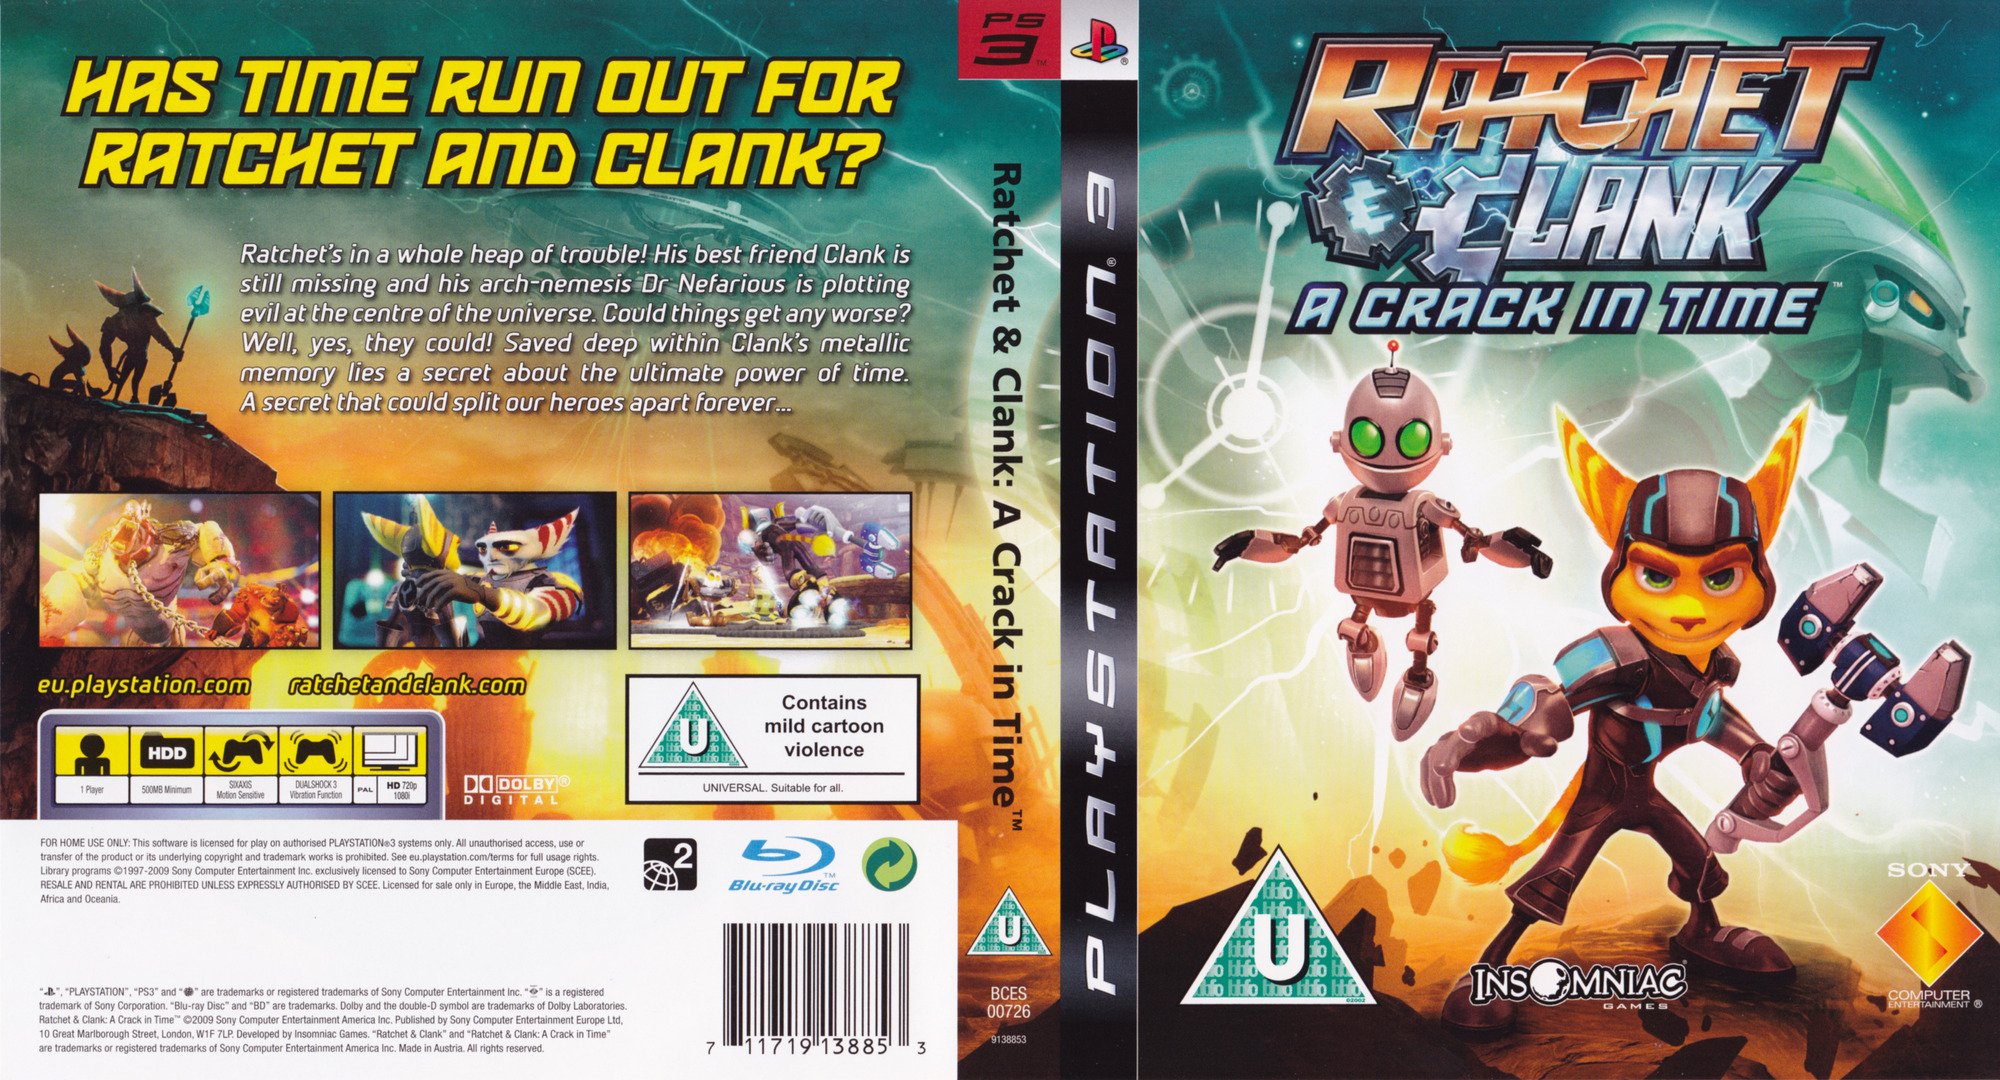 Ratchet & Clank: A Crack in Time PS3 coverfullHQ (BCES00726)